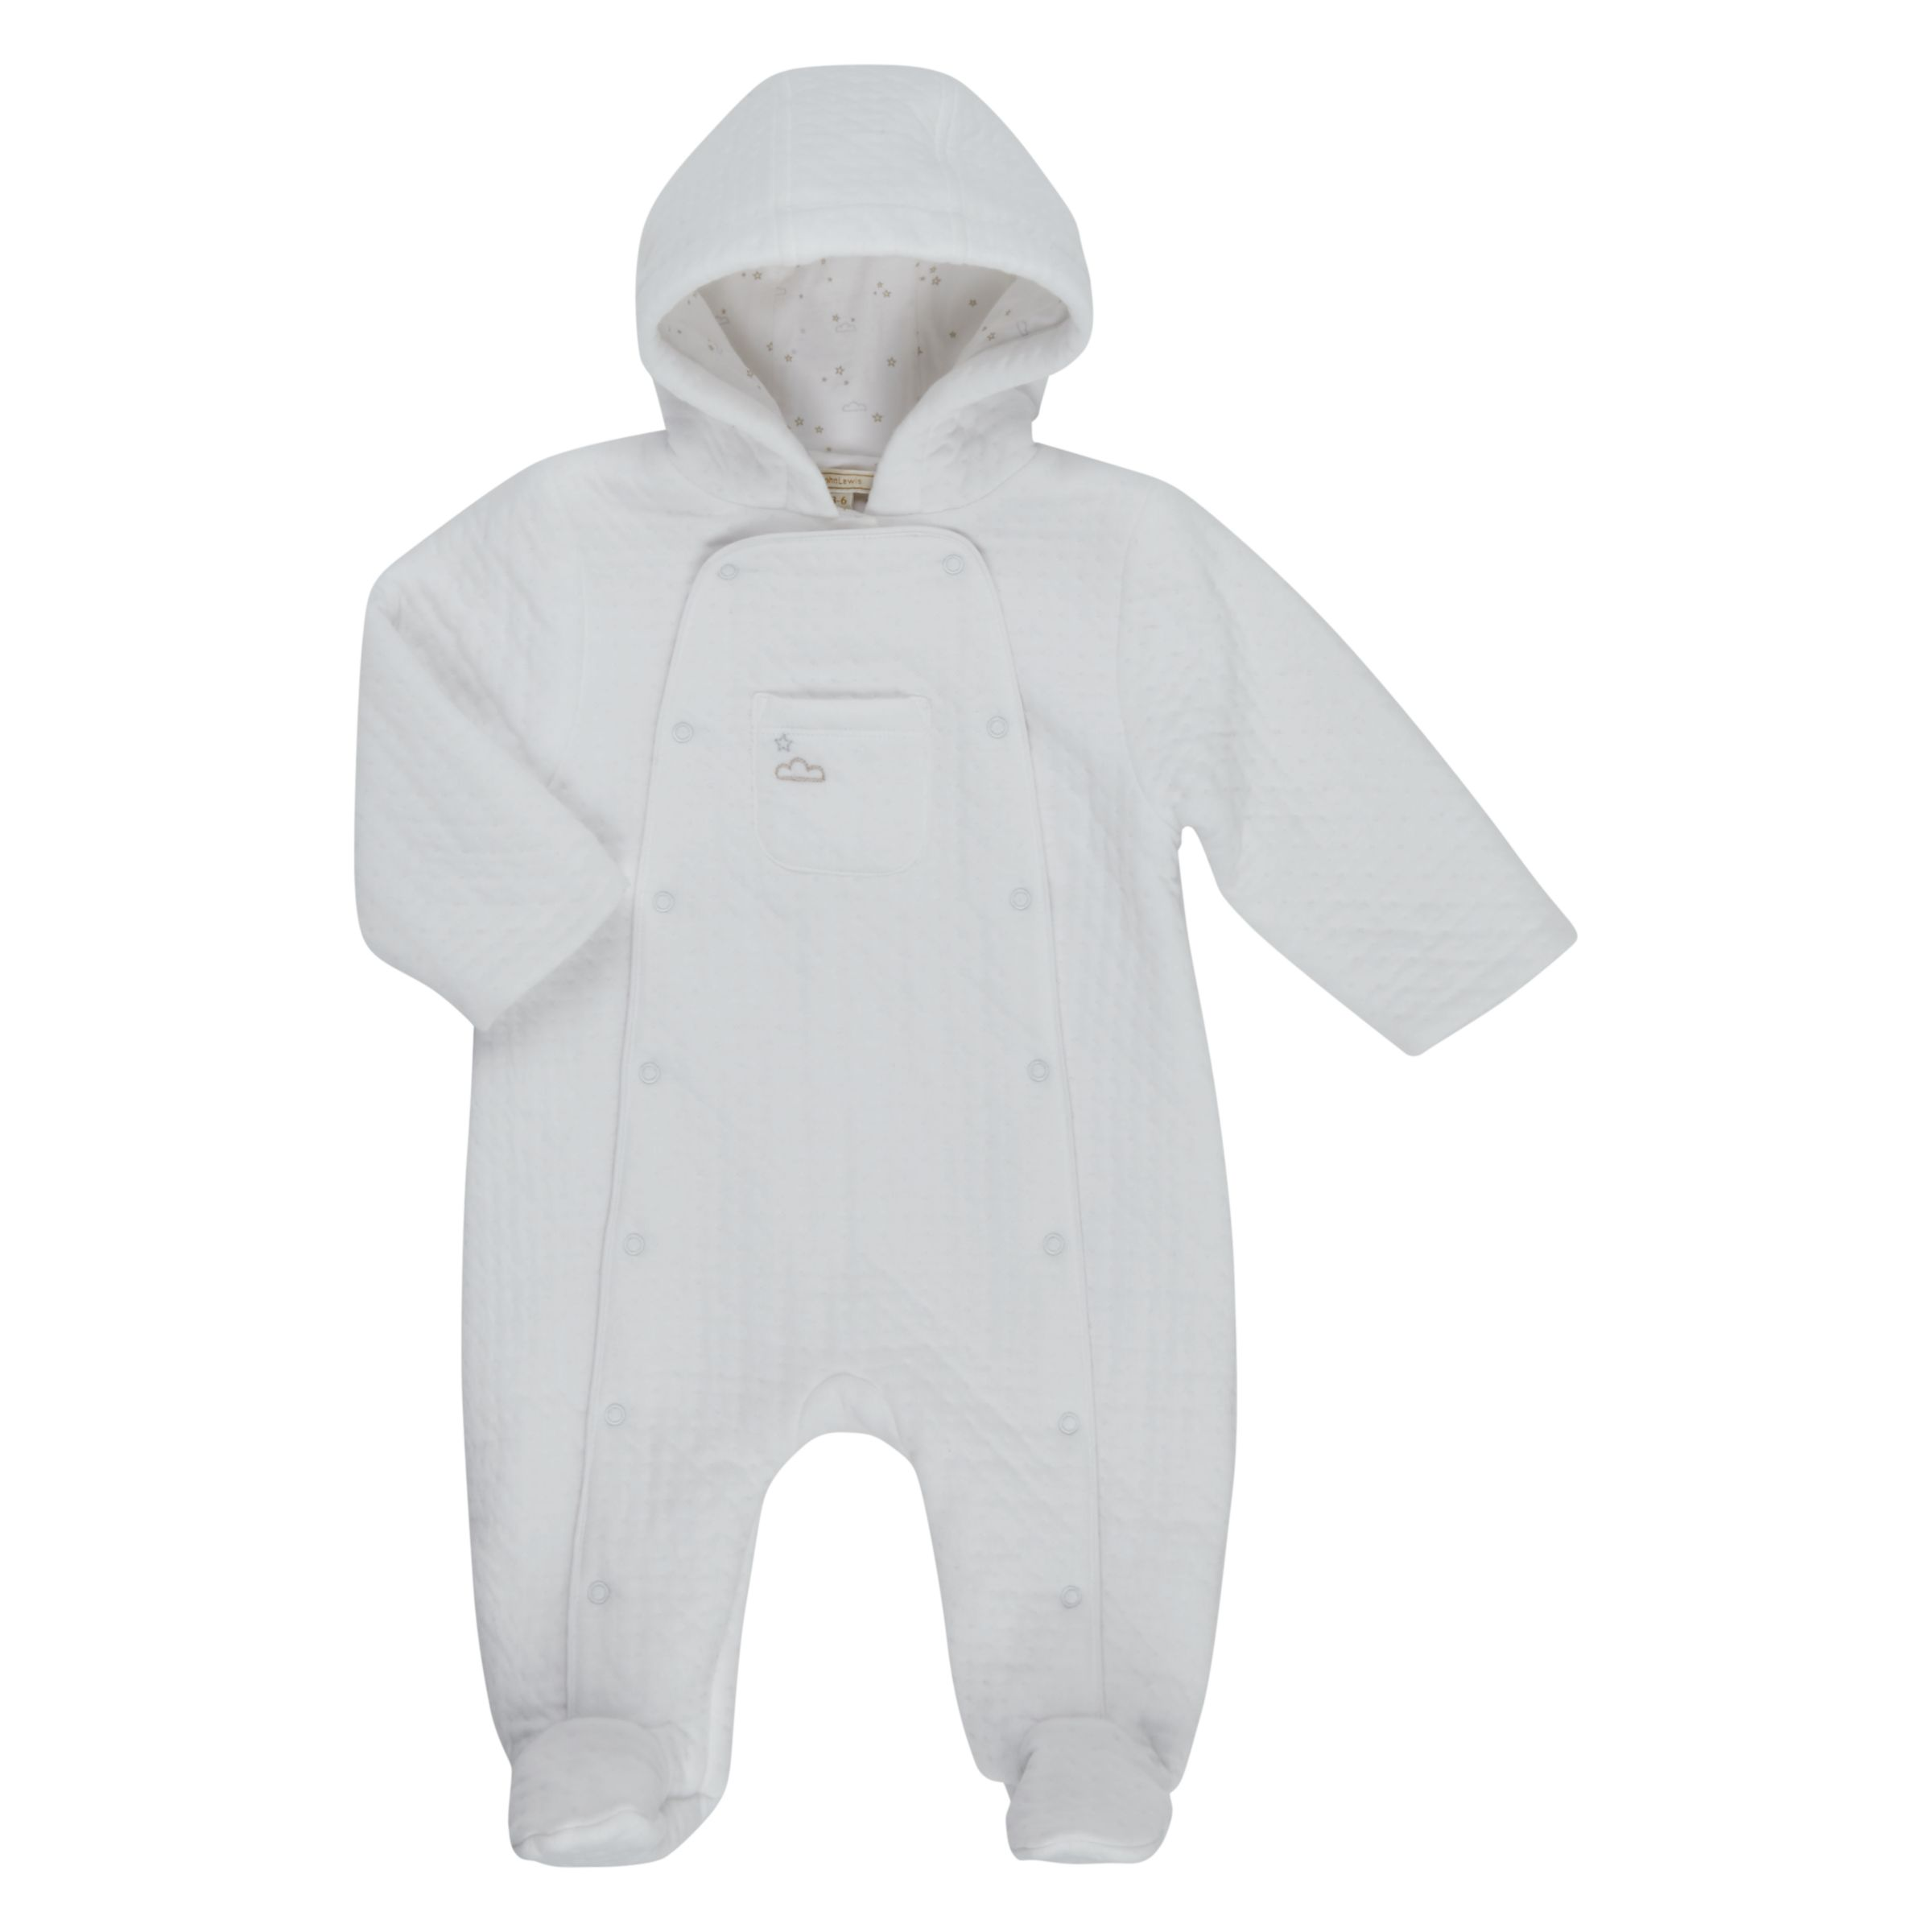 John Lewis Heirloom Collection John Lewis Heirloom Collection Baby Textured Hooded Pramsuit, White